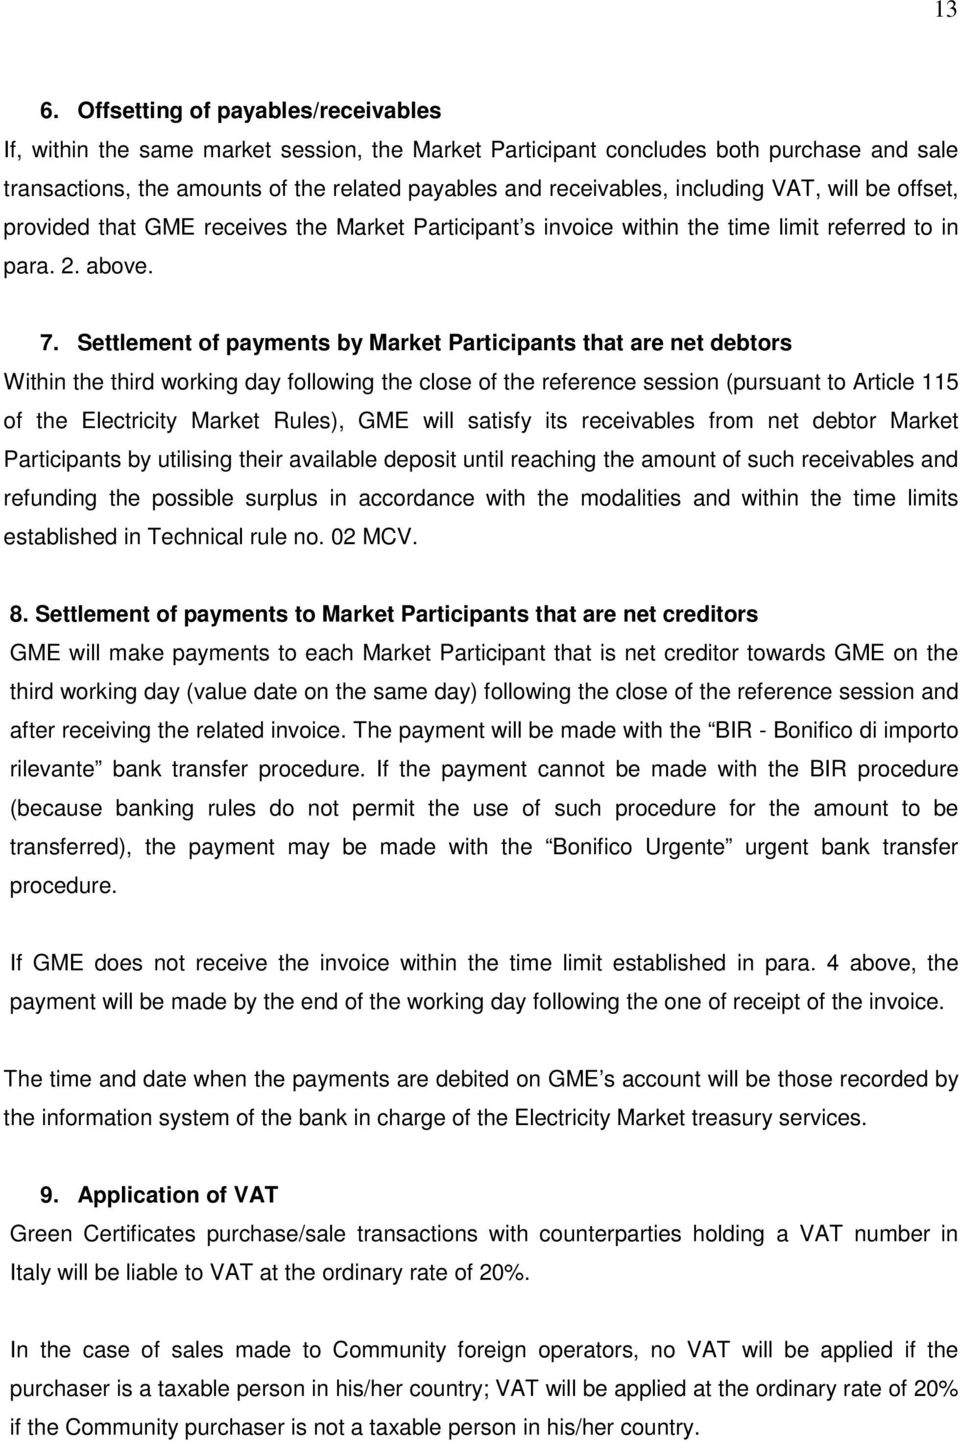 Settlement of payments by Market Participants that are net debtors Within the third working day following the close of the reference session (pursuant to Article 115 of the Electricity Market Rules),